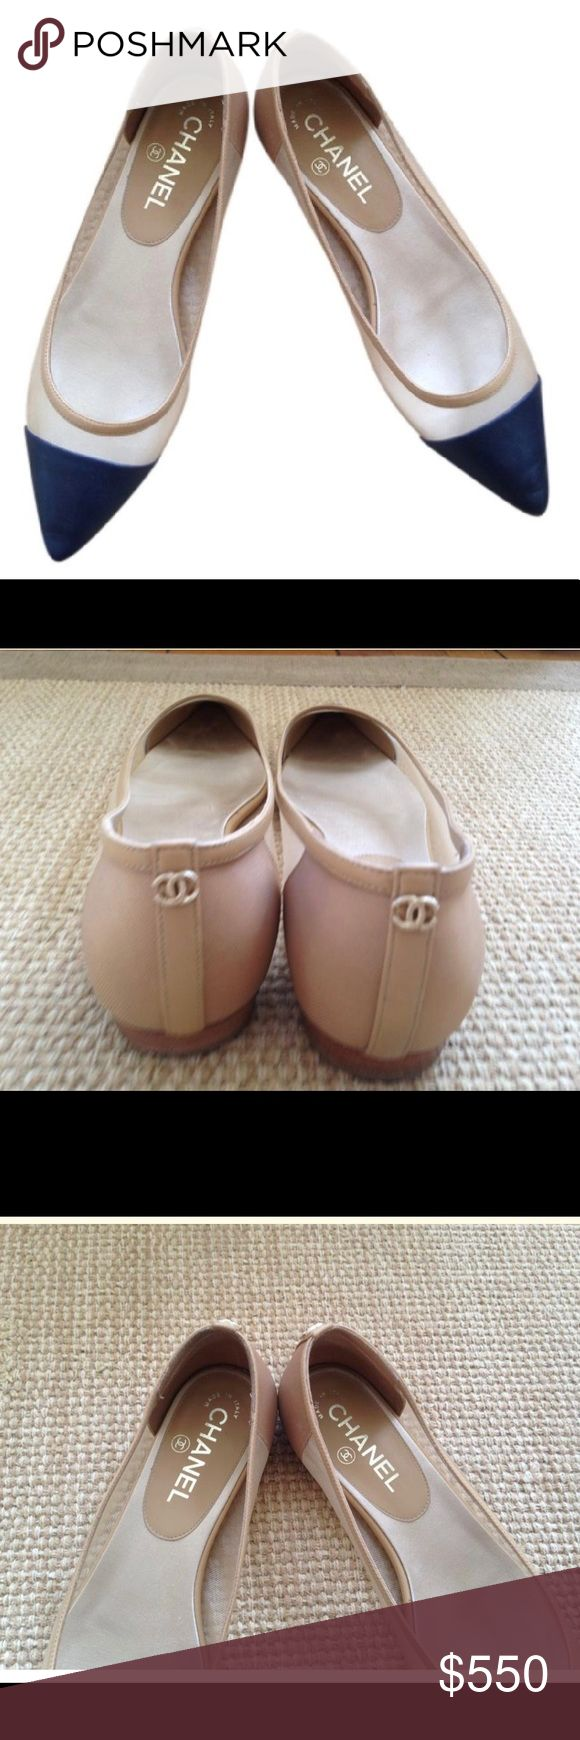 Authentic CHANEL flats These are amazing. They are nude with NAVY cap toe. The sides are a nude mesh. Worn minimally and retailed for 1300. No longer have box. the toes do not have creases. Get here for a fraction of the price CHANEL Shoes Flats & Loafers